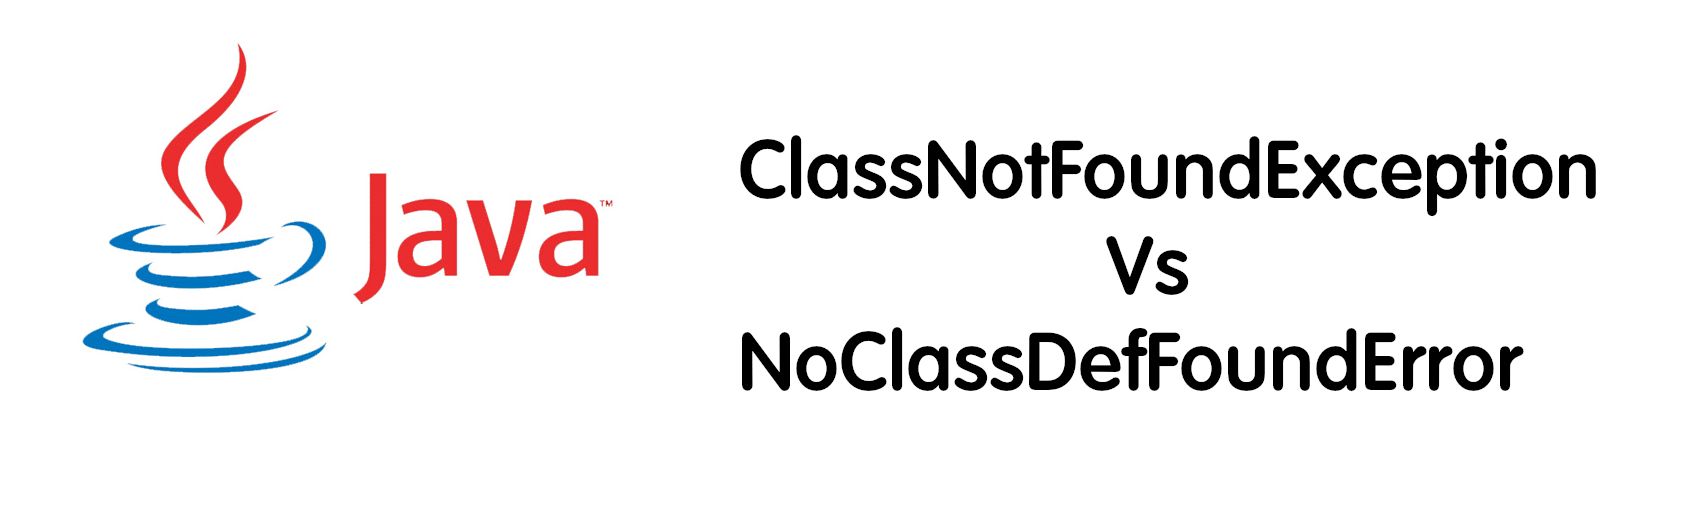 ClassNotFoundException Vs NoClassDefFoundError